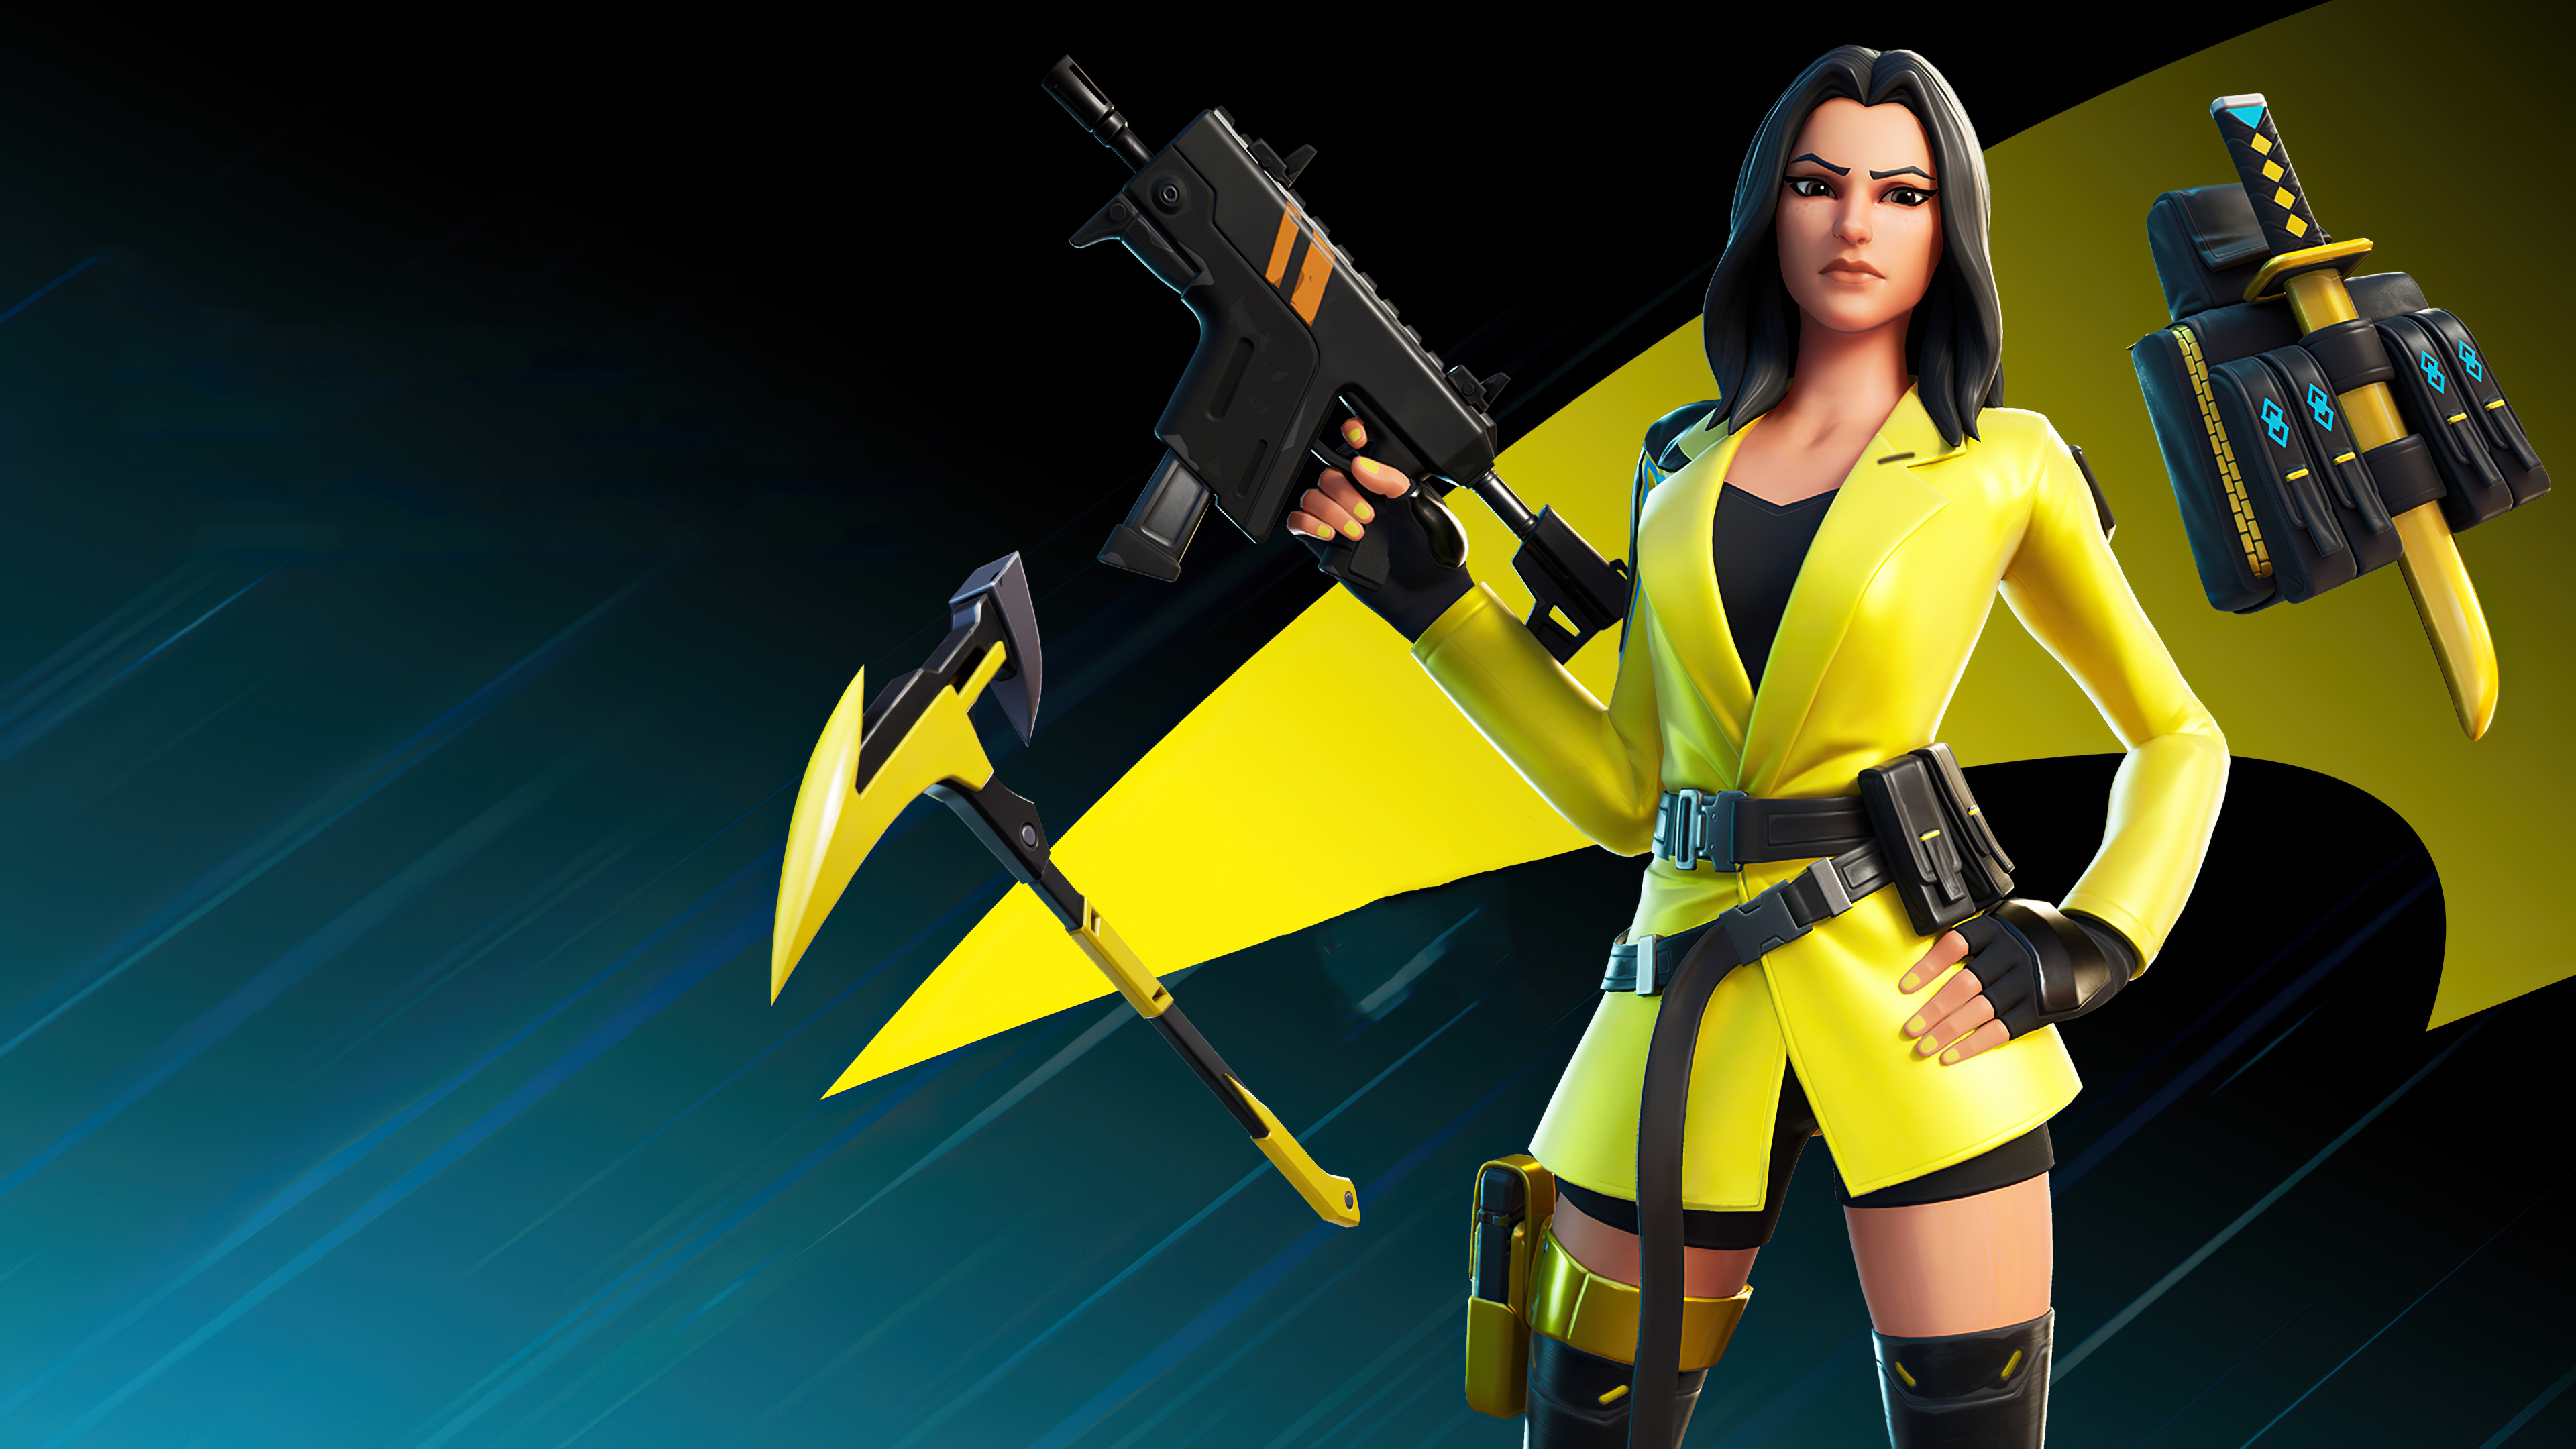 Yellow Jacket Fortnite 2020 Hd Games 4k Wallpapers Images Backgrounds Photos And Pictures